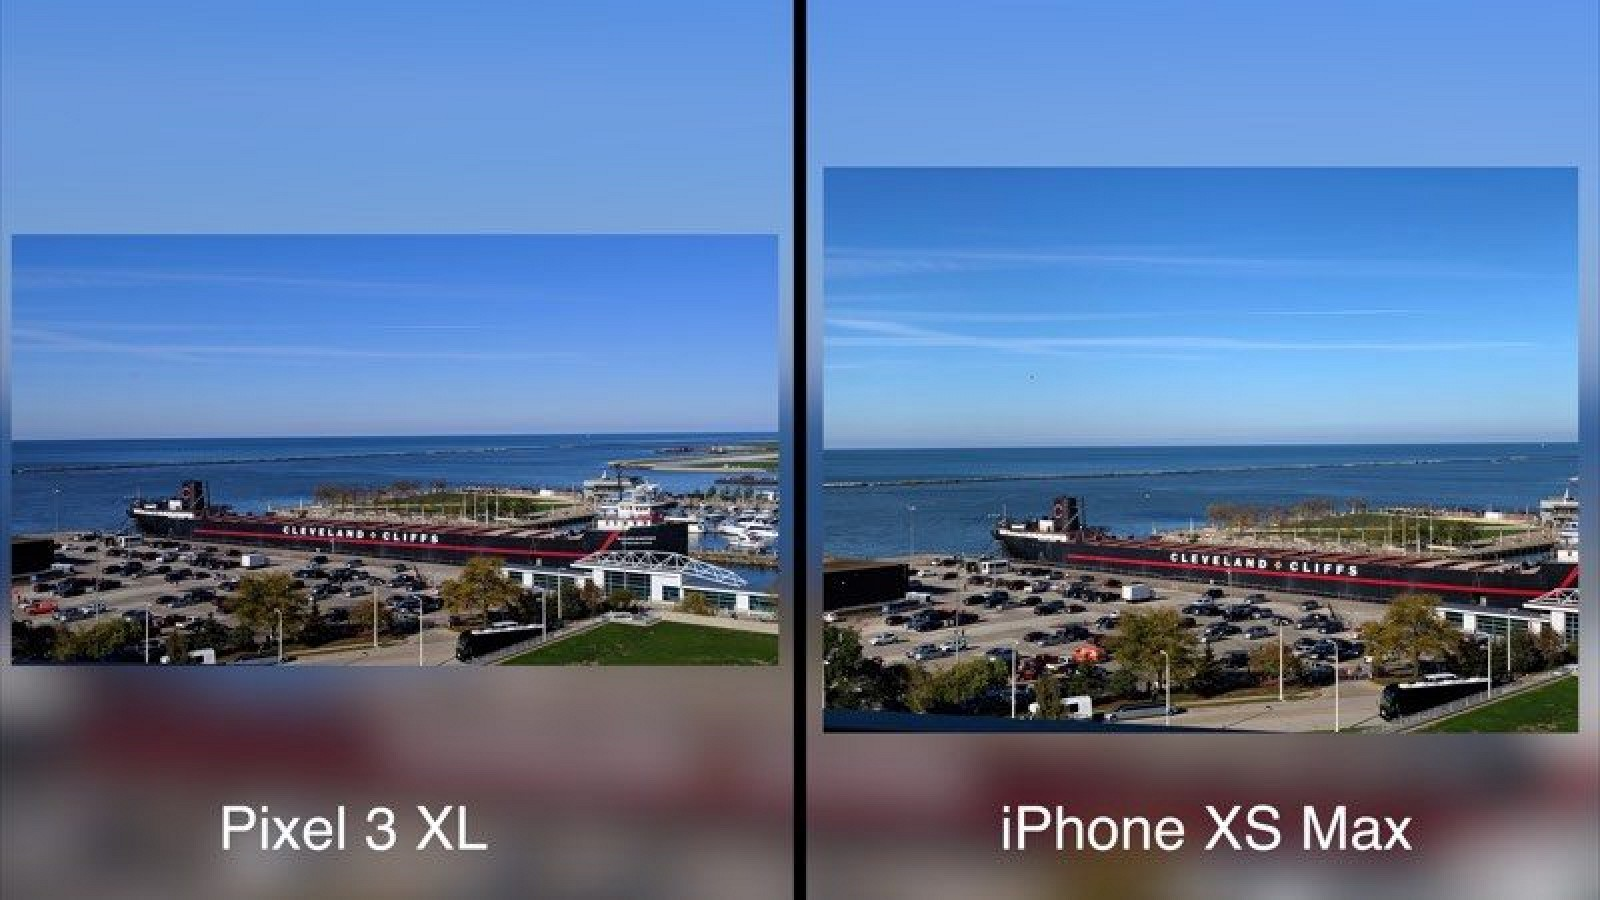 Google Pixel 3 XL vs. iPhone XS Max: Which Camera Reigns Supreme?